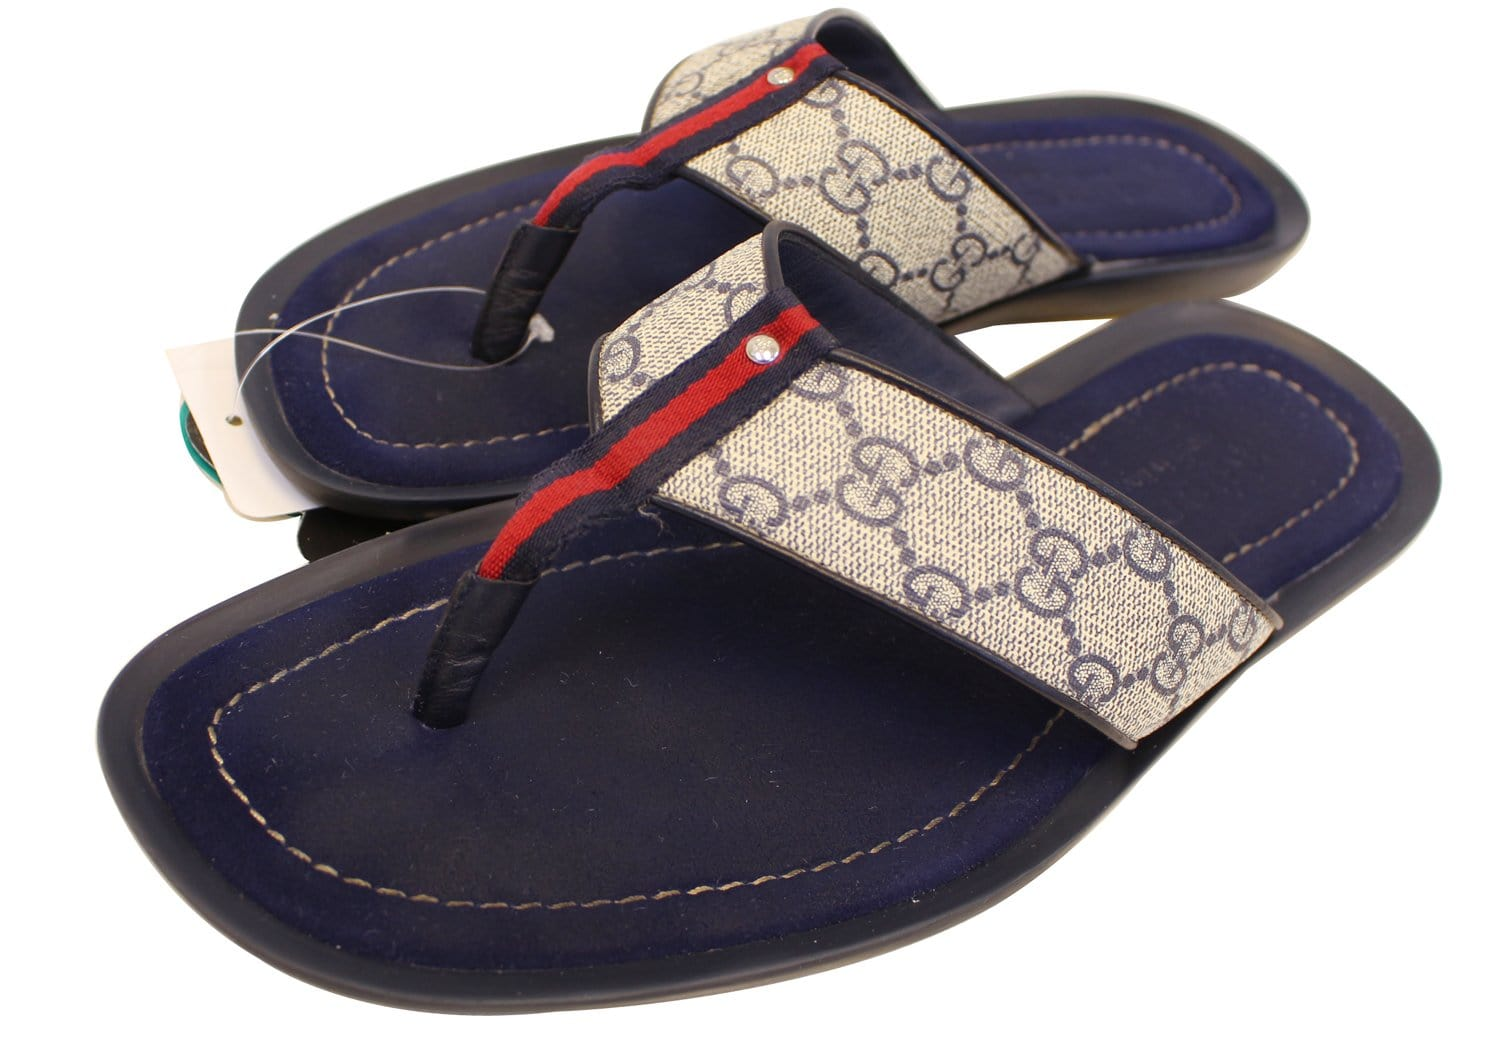 Gucci Mens Gg Supreme Blue Flip Flops Sandals Size 9 G-2820